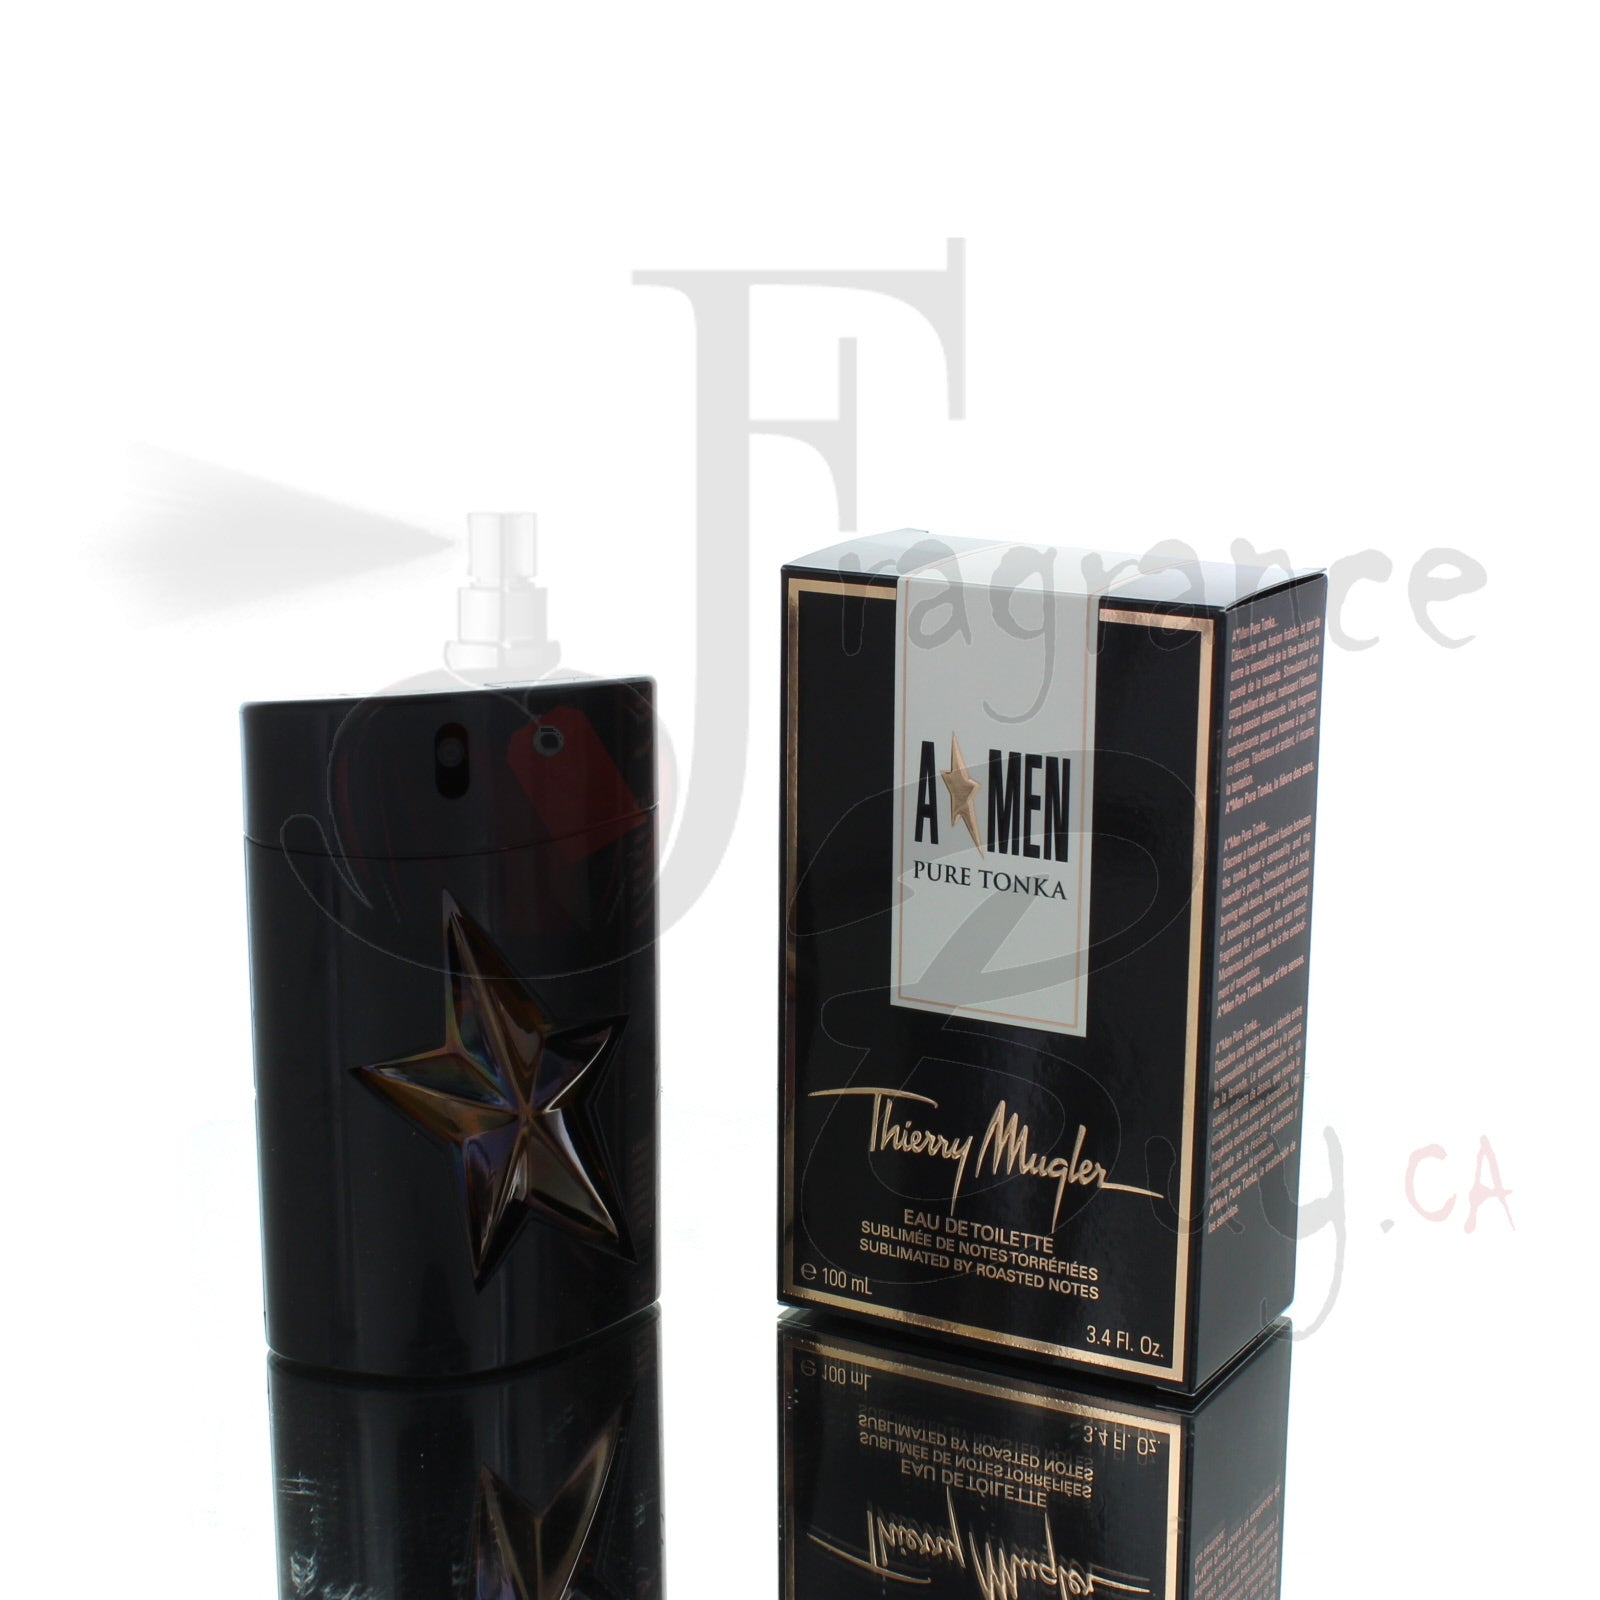 Angel A*Men Pure Tonka by Thierry Mugler For Man